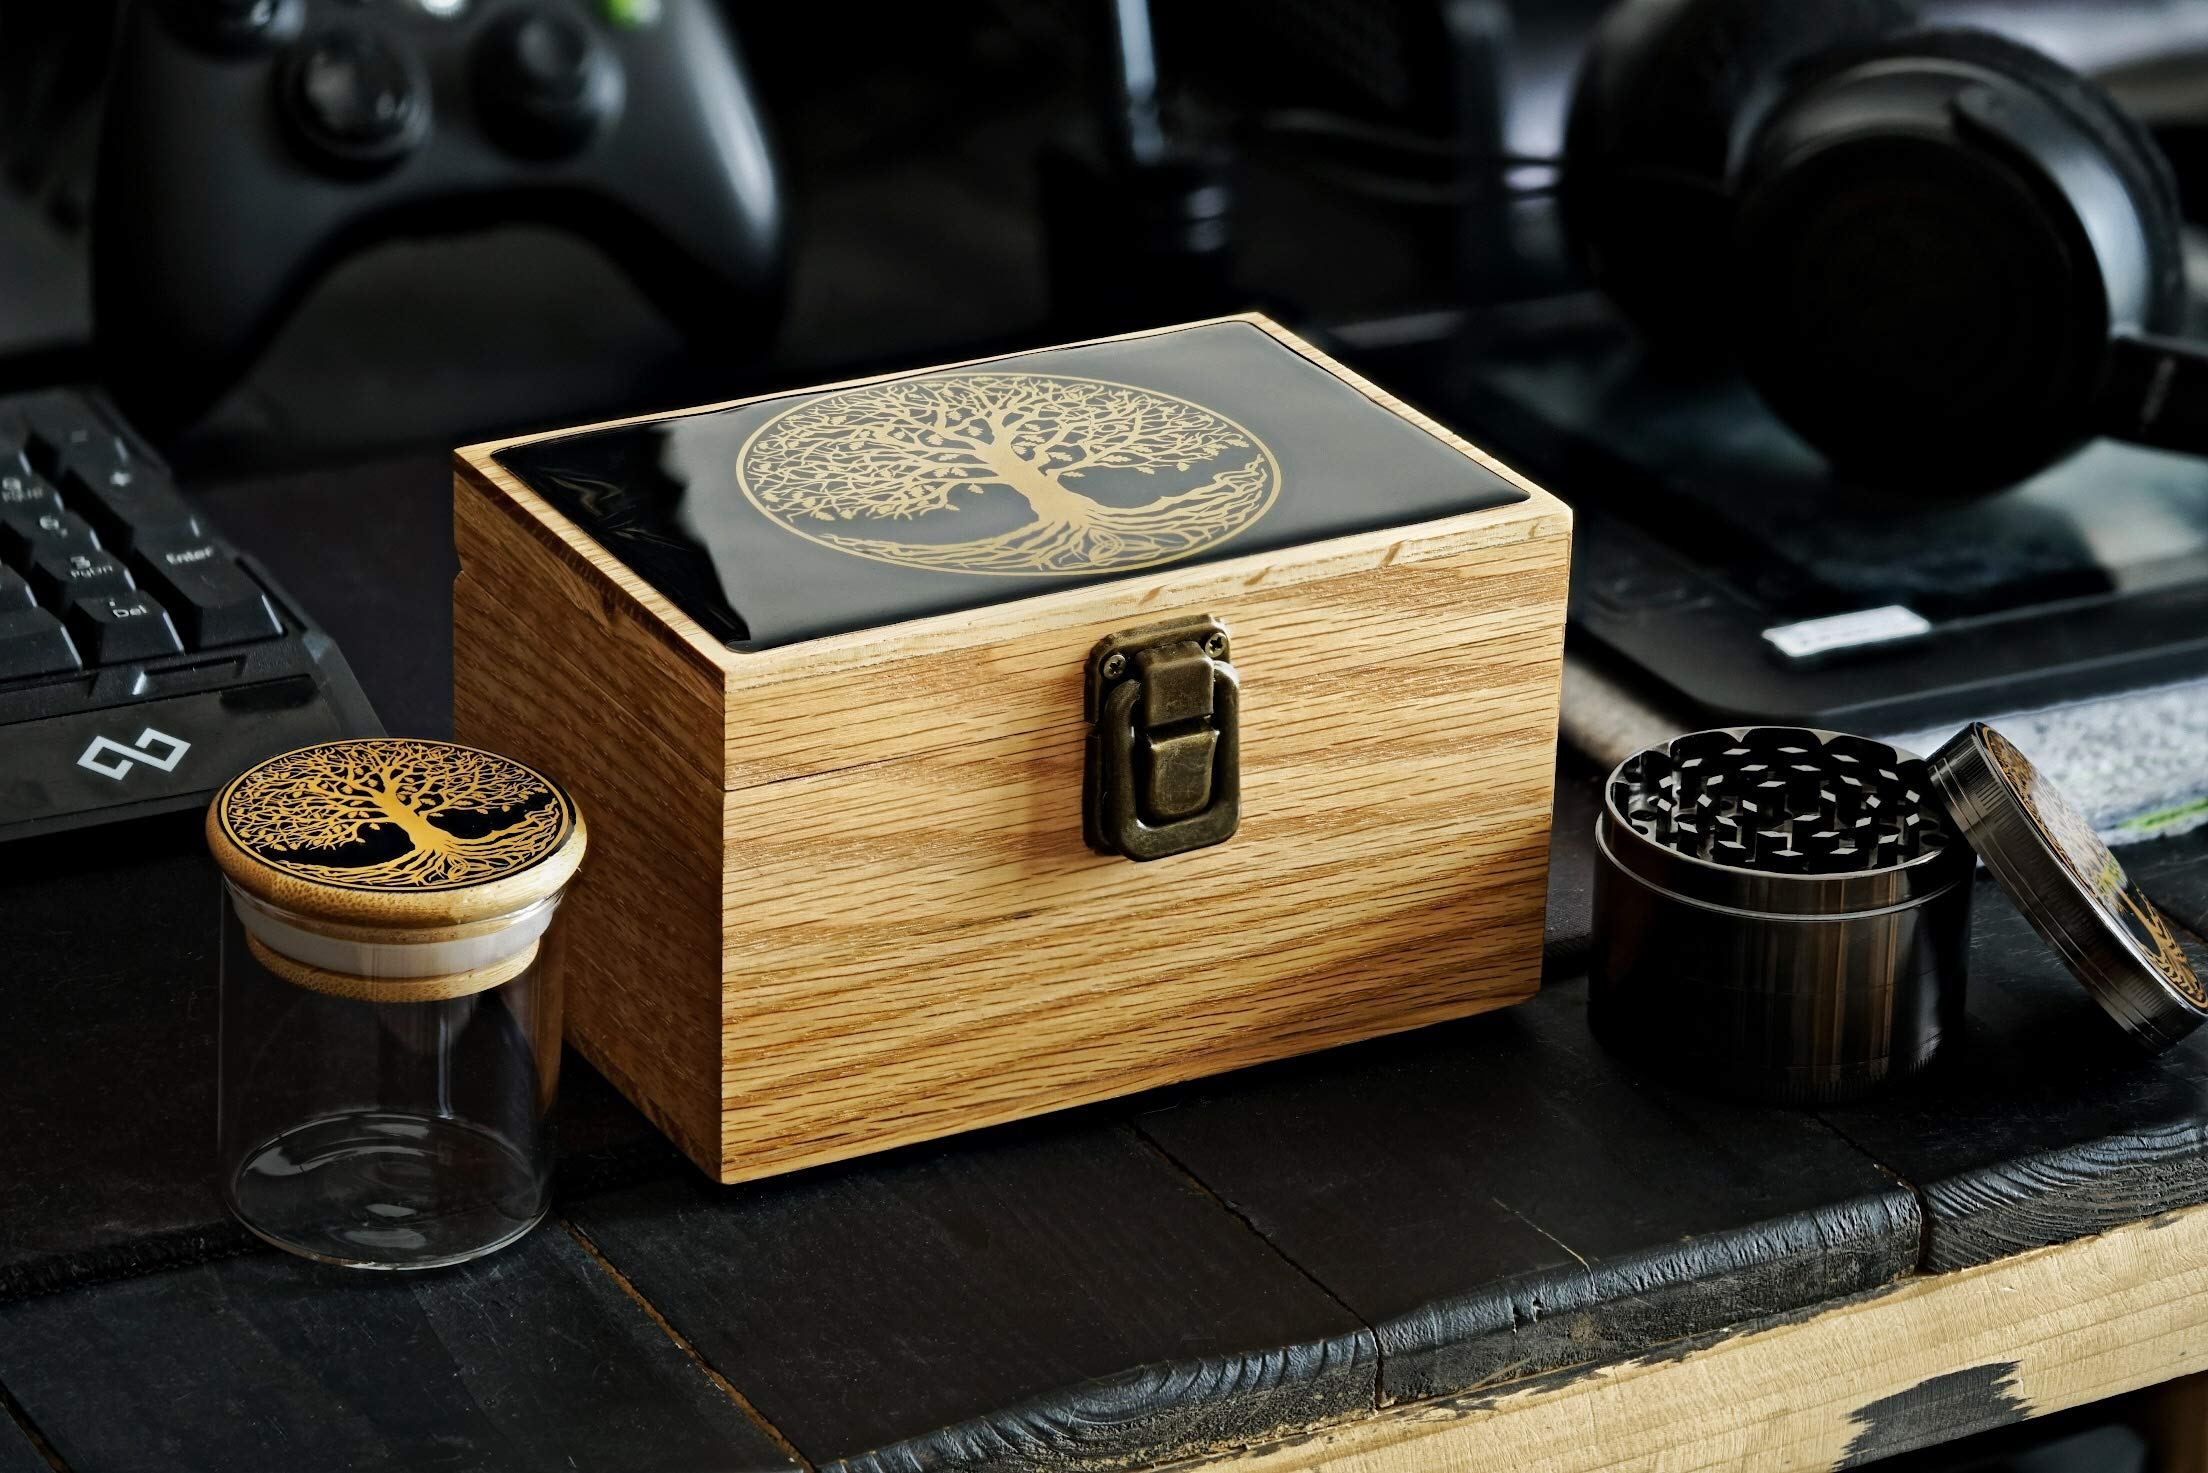 Tree of Life Oak Wood Stash Box Combo - Big Size Titanium 4 Part Herb Grinder - Airtight Wood Lid Glass Stash Jar - Engraved Wood Handmade Decorative Stash Box - Smell Proof and Airtight.